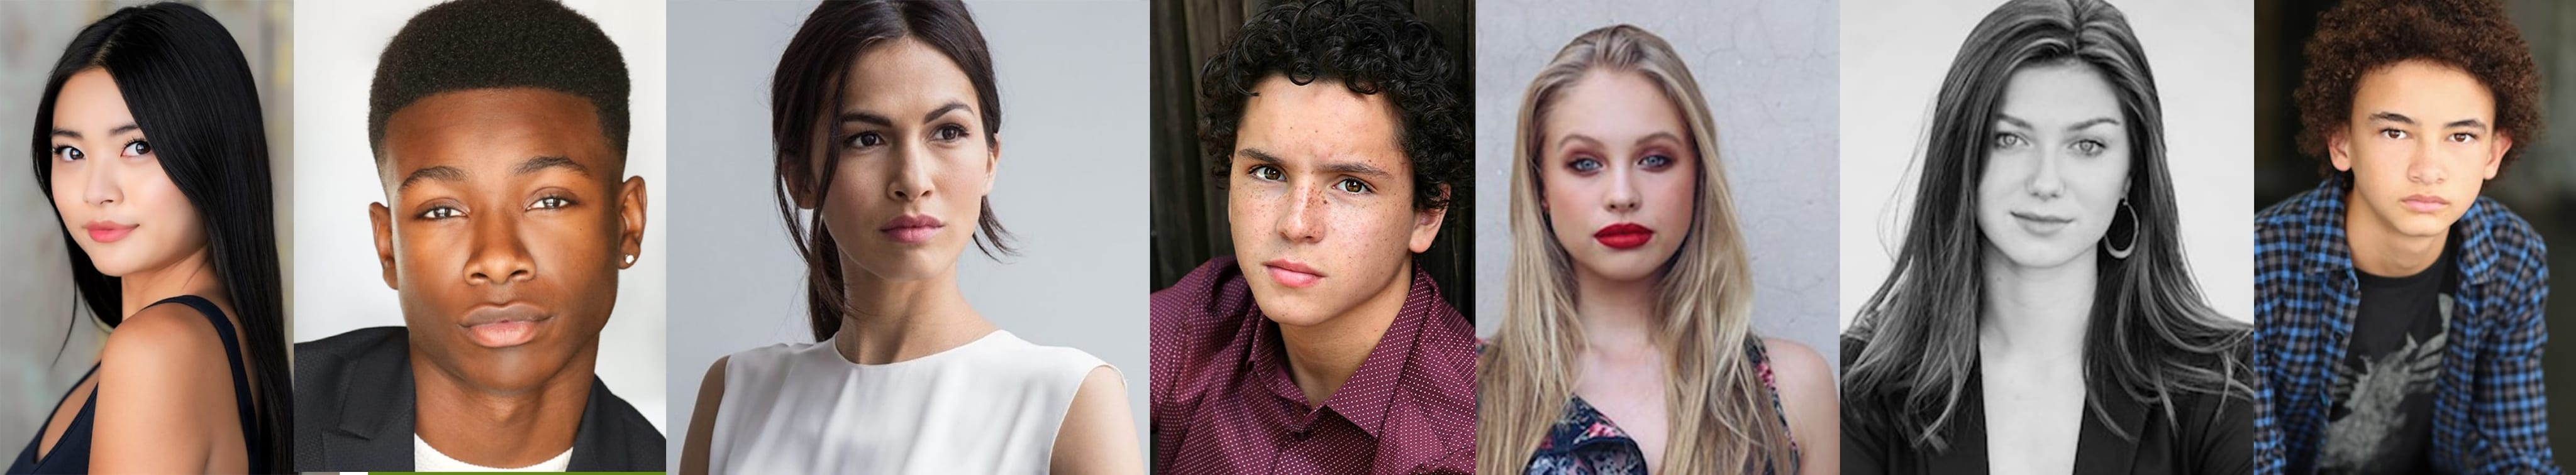 headshots of Secret Society of Second Born Royals cast